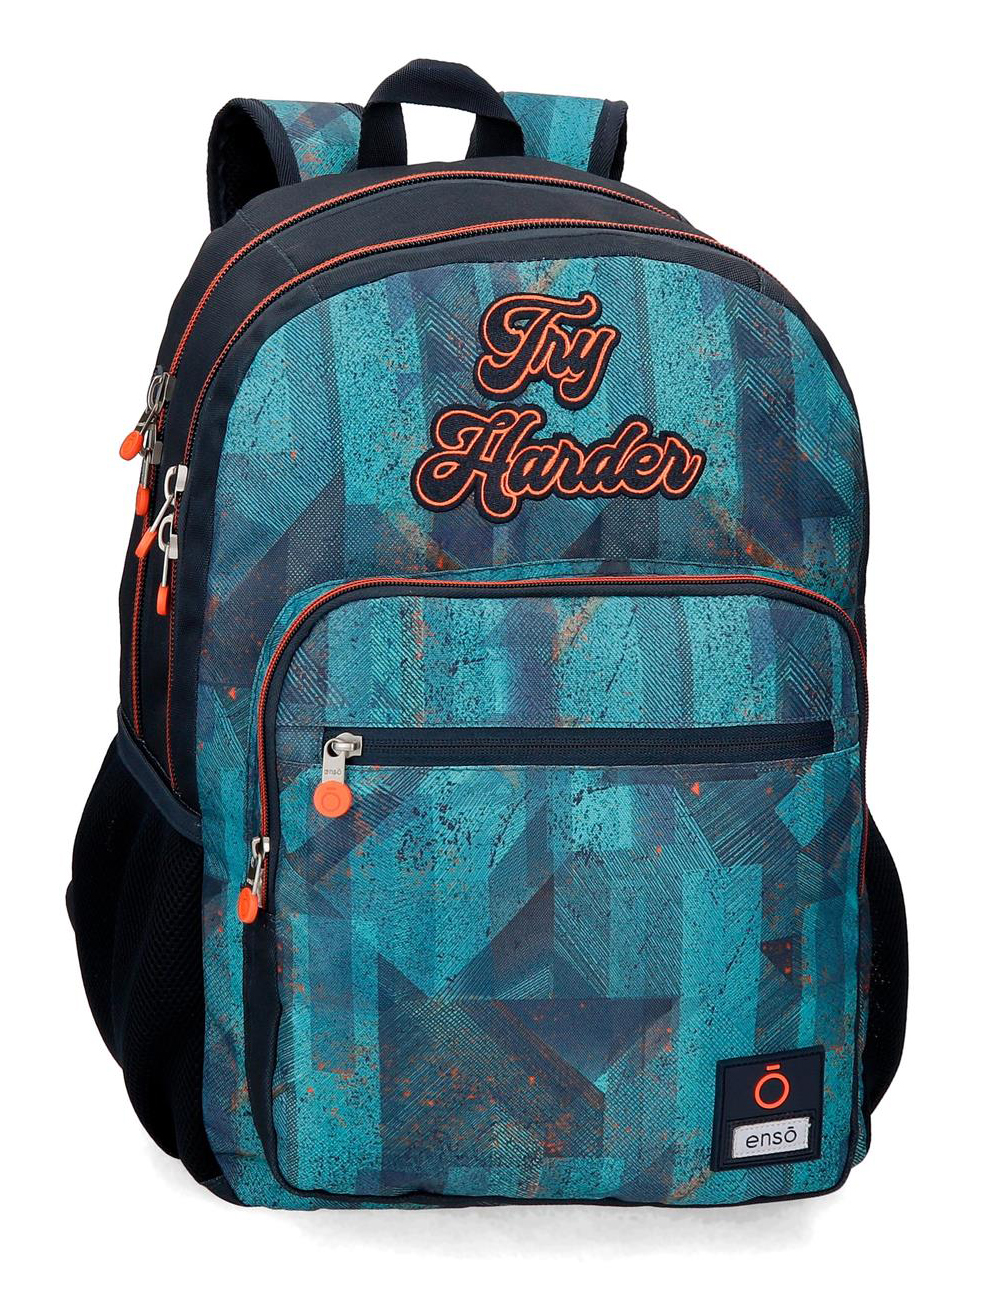 9082421 Mochila Grande 46 cm Doble Compartimento Enso Try Harder